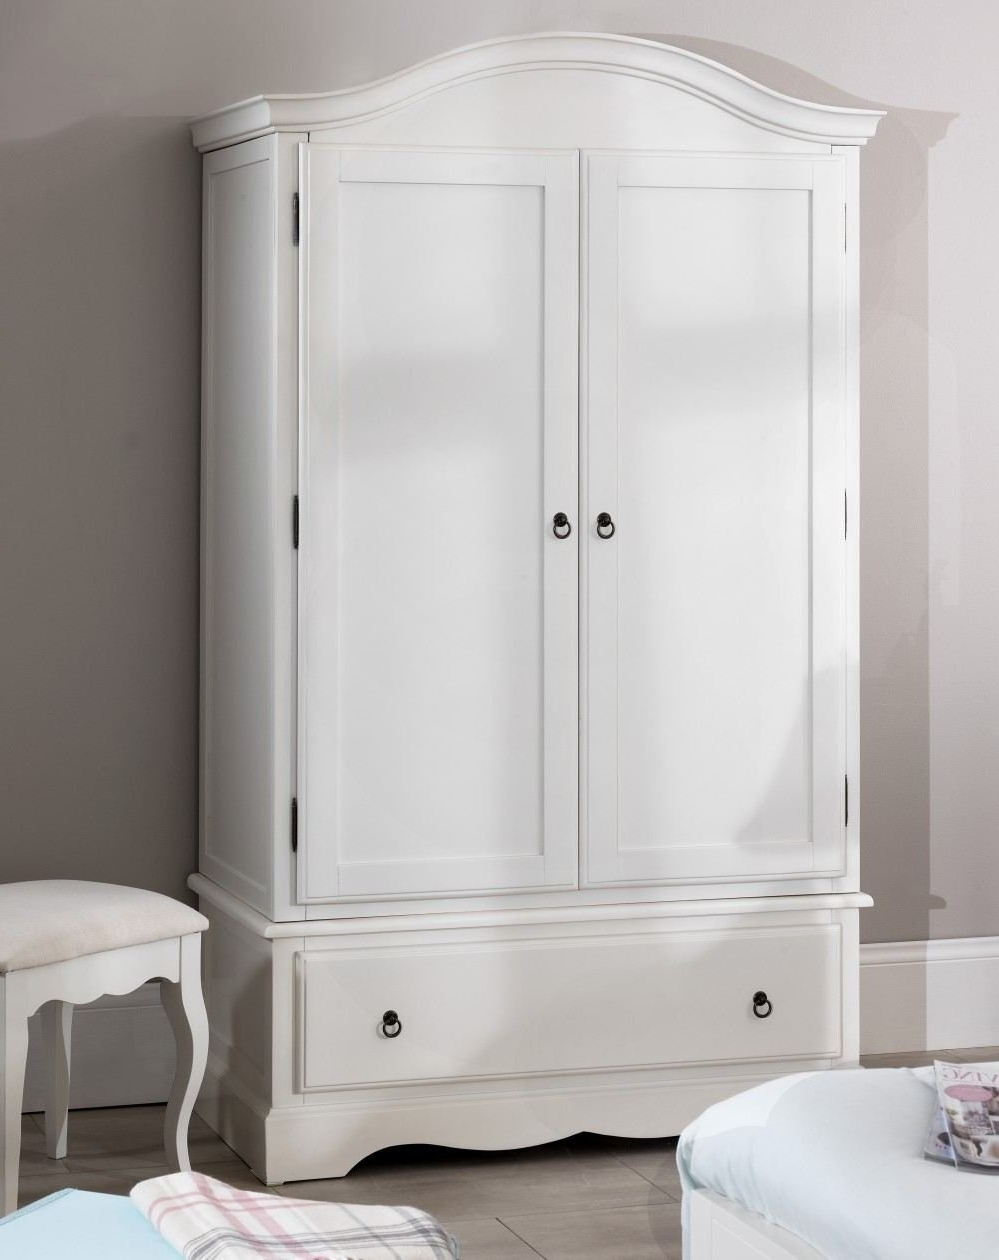 Fashionable Romance Double Wardrobe, Stunning French Antique White Wardrobe Throughout White French Wardrobes (View 4 of 15)